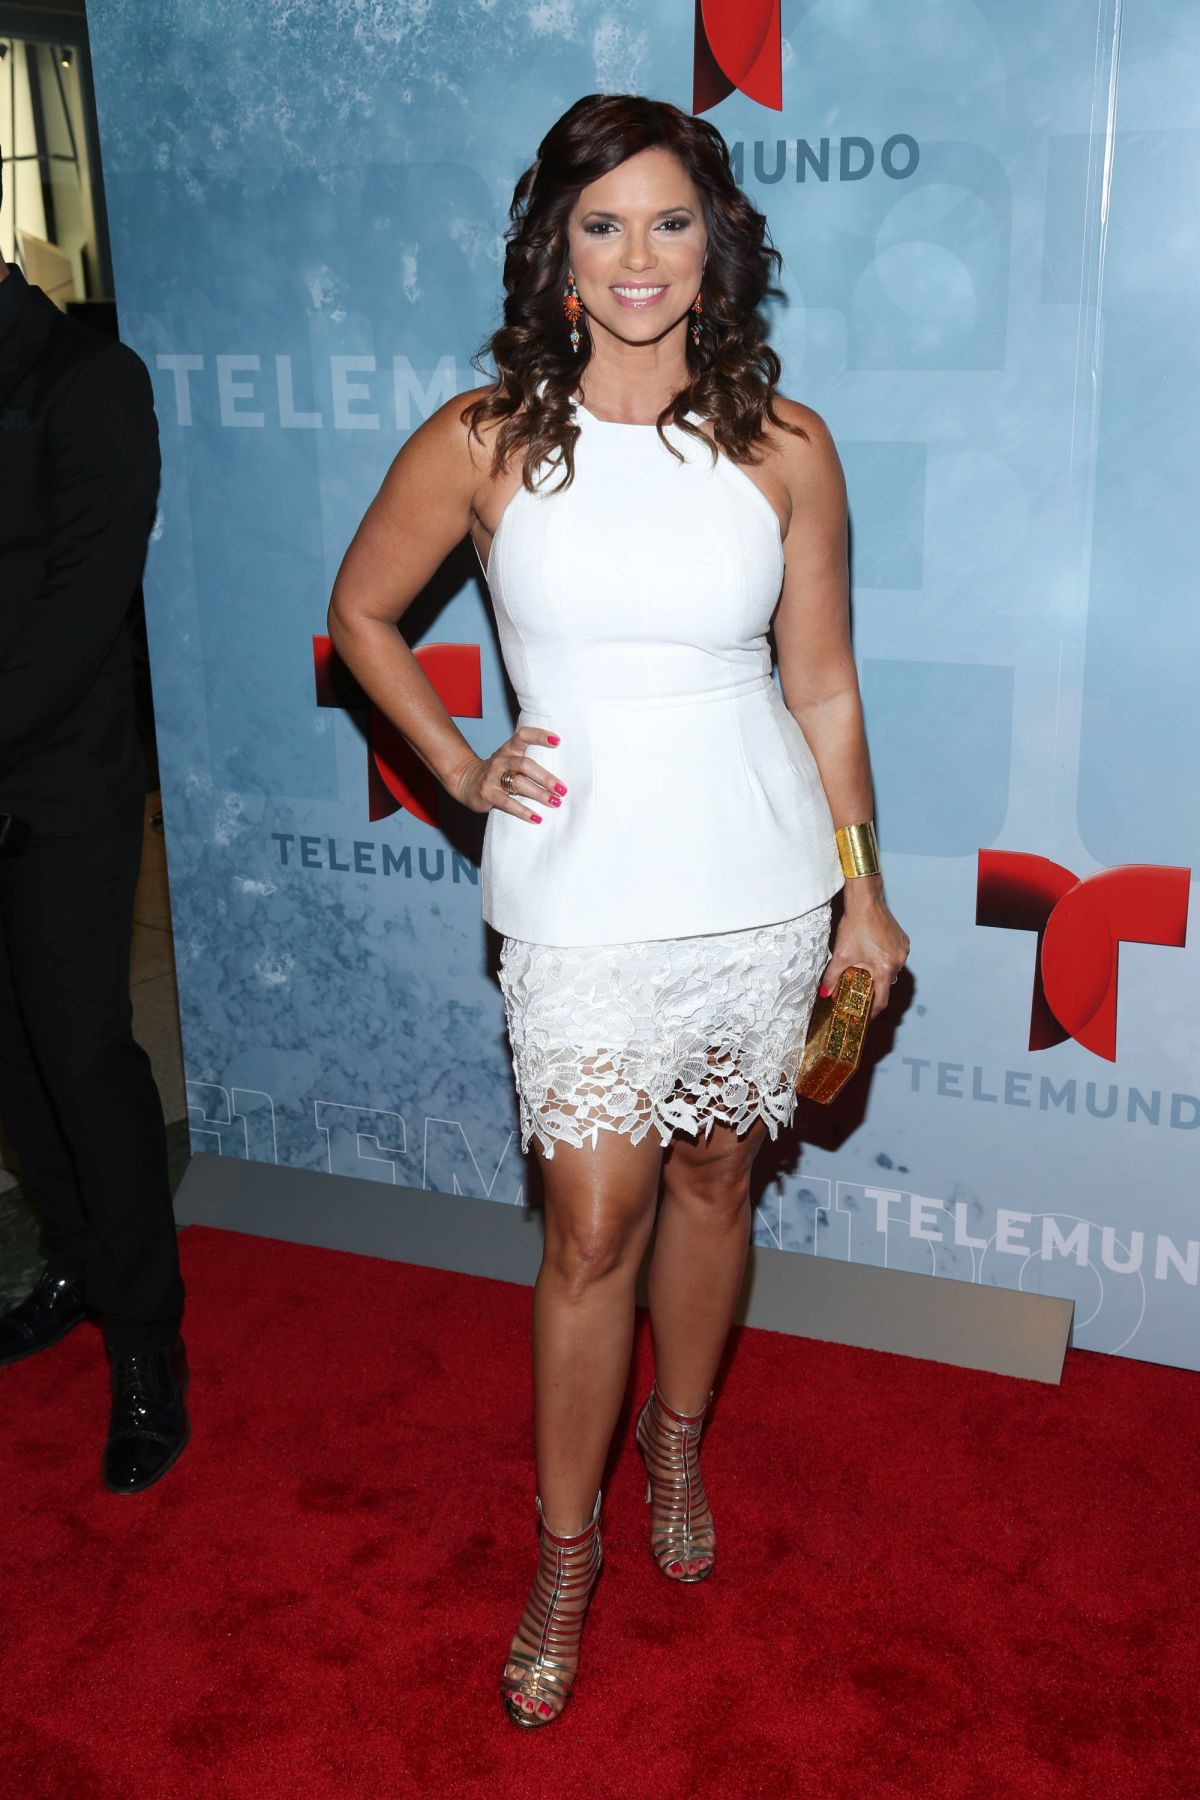 RASHEL DIAZ at Telemundo Upfront 2014 in New York